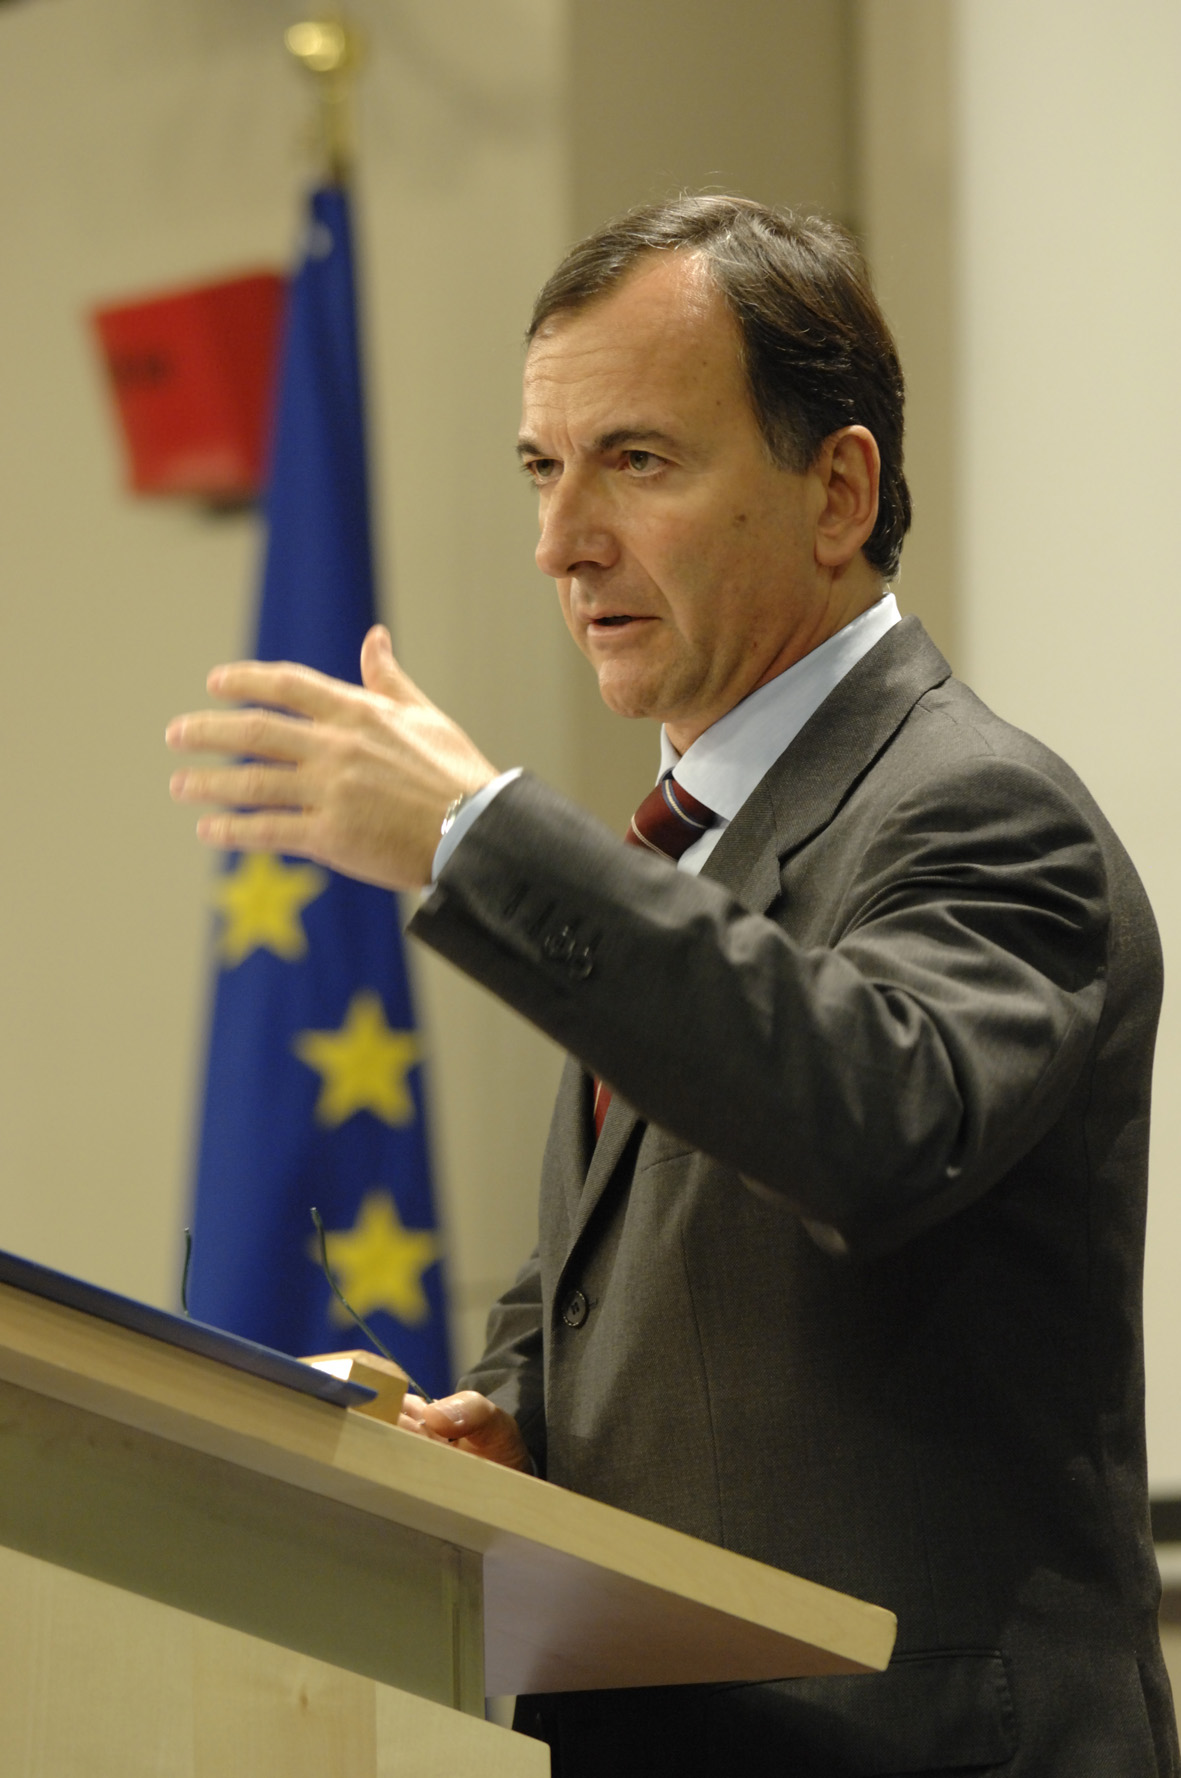 Press conference by Franco Frattini, Vice-President of the EC in charge of Justice, Freedom and Security, on the EU counter-terrorism strategy and action plan